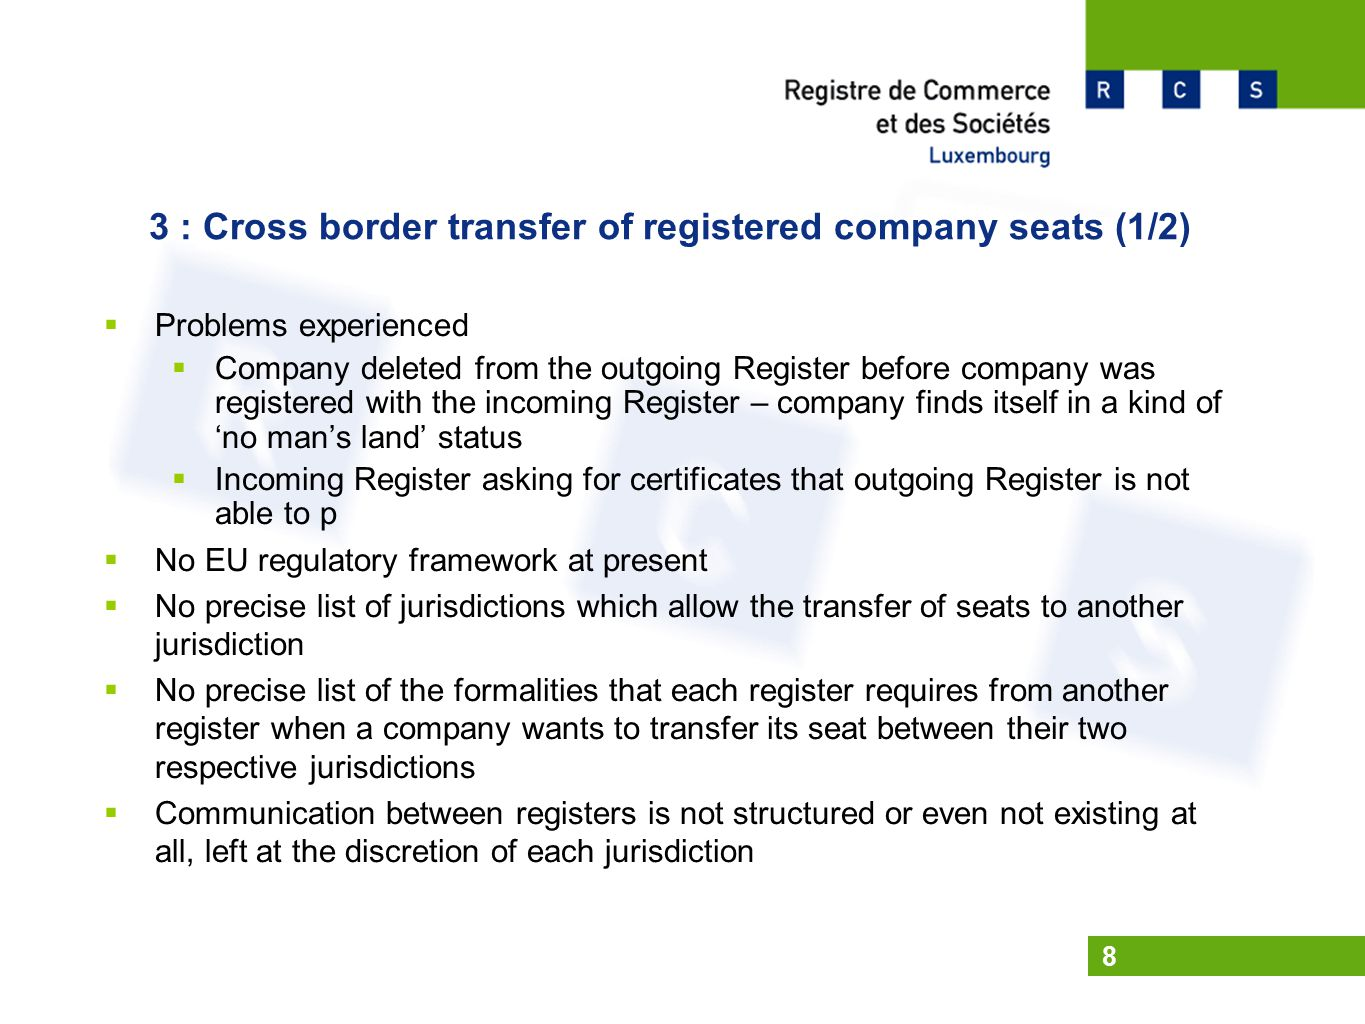 8 3 : Cross border transfer of registered company seats (1/2)  Problems experienced  Company deleted from the outgoing Register before company was registered with the incoming Register – company finds itself in a kind of 'no man's land' status  Incoming Register asking for certificates that outgoing Register is not able to p  No EU regulatory framework at present  No precise list of jurisdictions which allow the transfer of seats to another jurisdiction  No precise list of the formalities that each register requires from another register when a company wants to transfer its seat between their two respective jurisdictions  Communication between registers is not structured or even not existing at all, left at the discretion of each jurisdiction